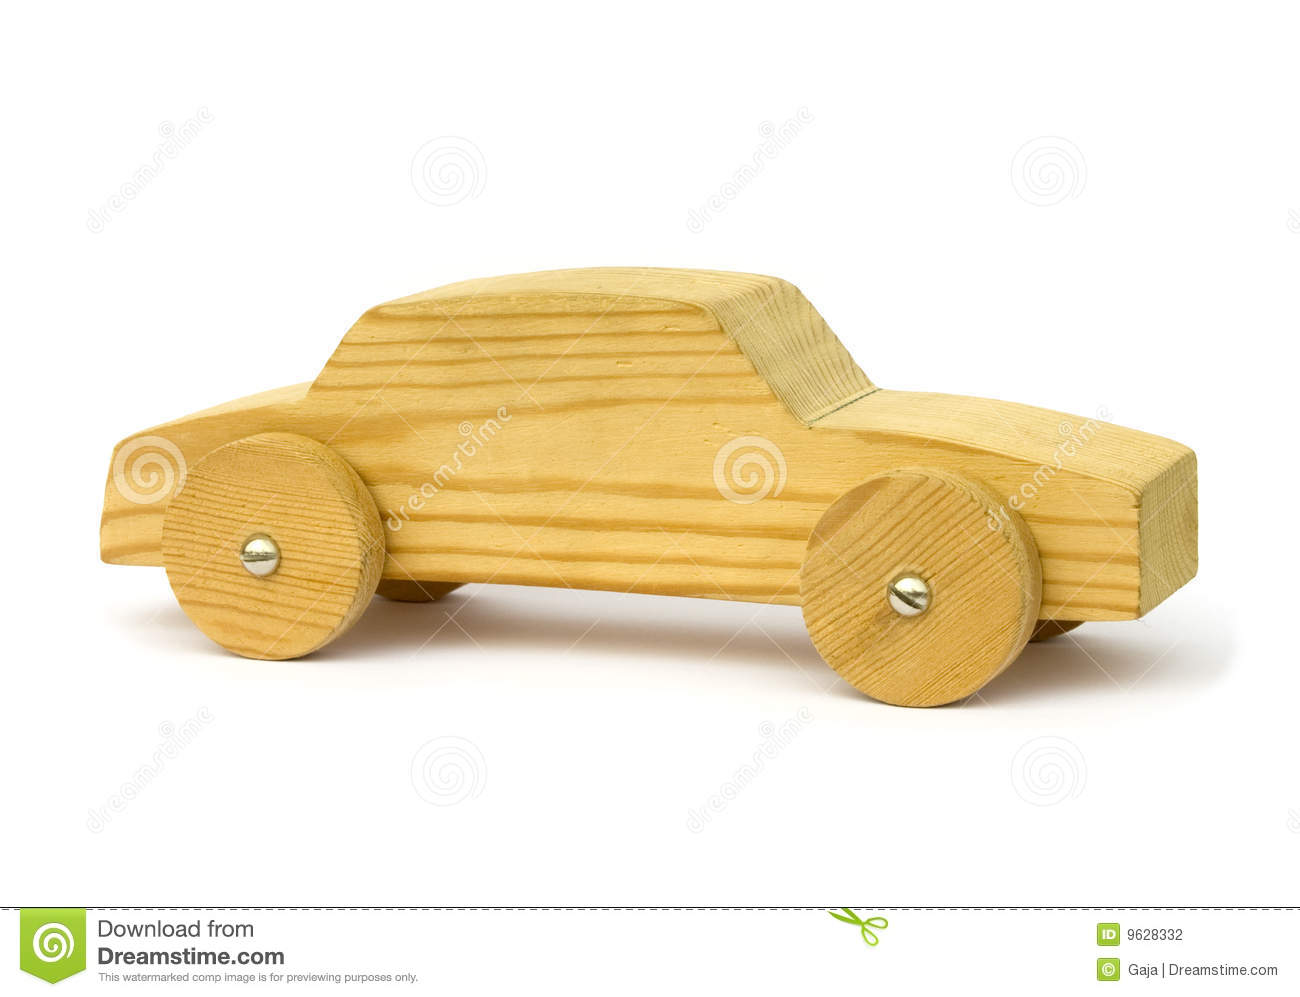 wooden toy plans wood game plans